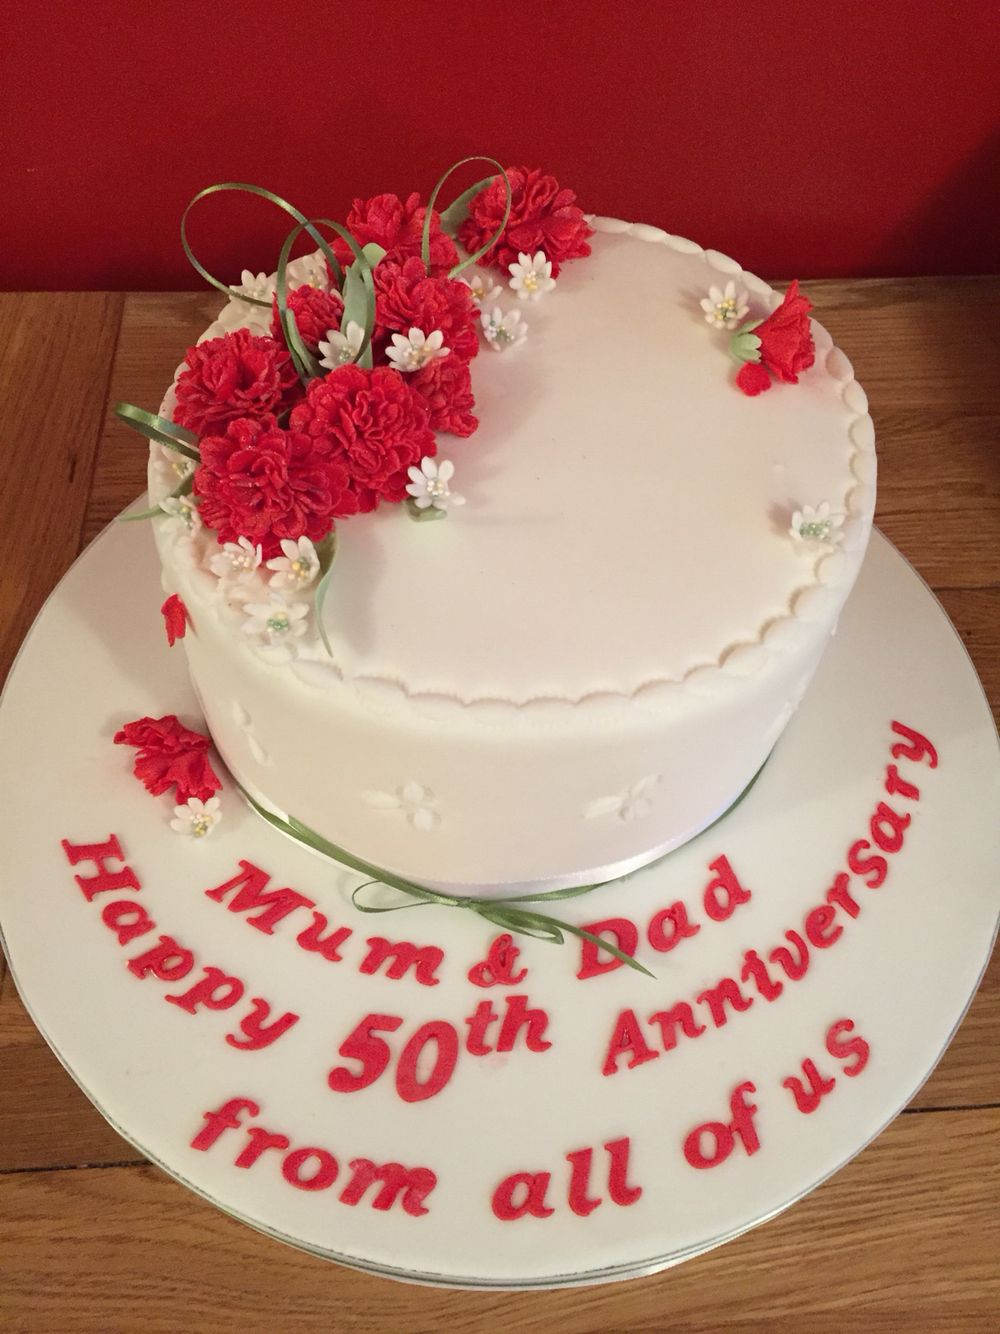 Carnation Flower Anniversary Cake Edible Flowers Cake Cake Flower Cake